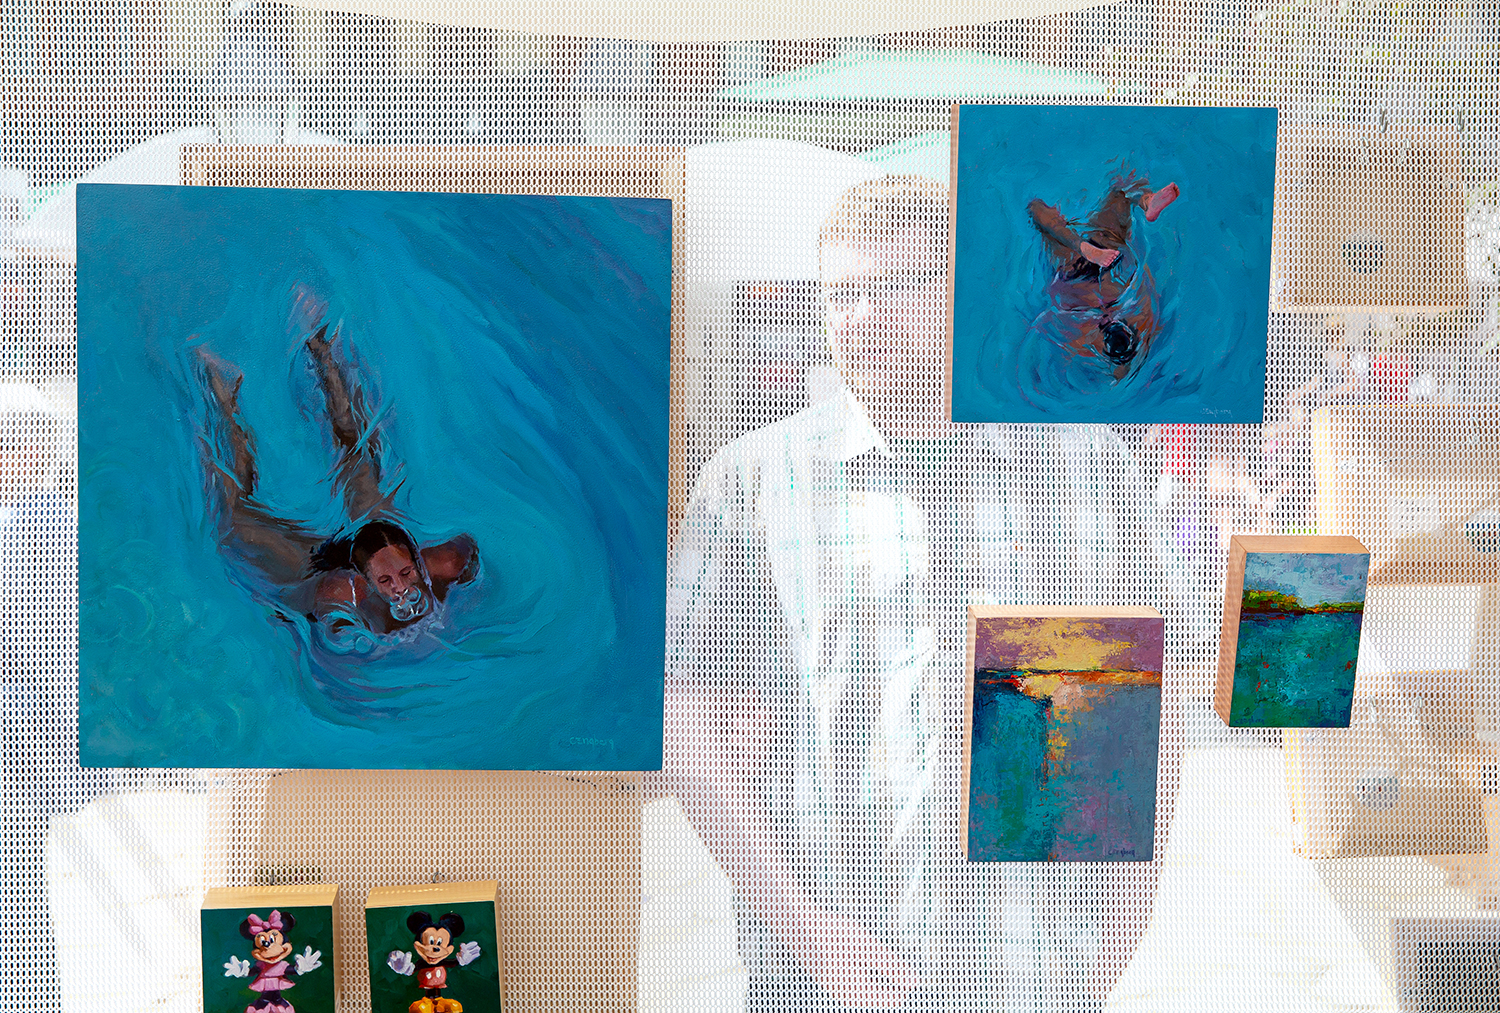 Peoria artist Cathy Engberg's oil paintings are displayed at the Old Capitol Art Festival Saturday, May 19, 2018 at the Old State Capitol in Springfield, Ill. [Rich Saal/The State Journal-Register]